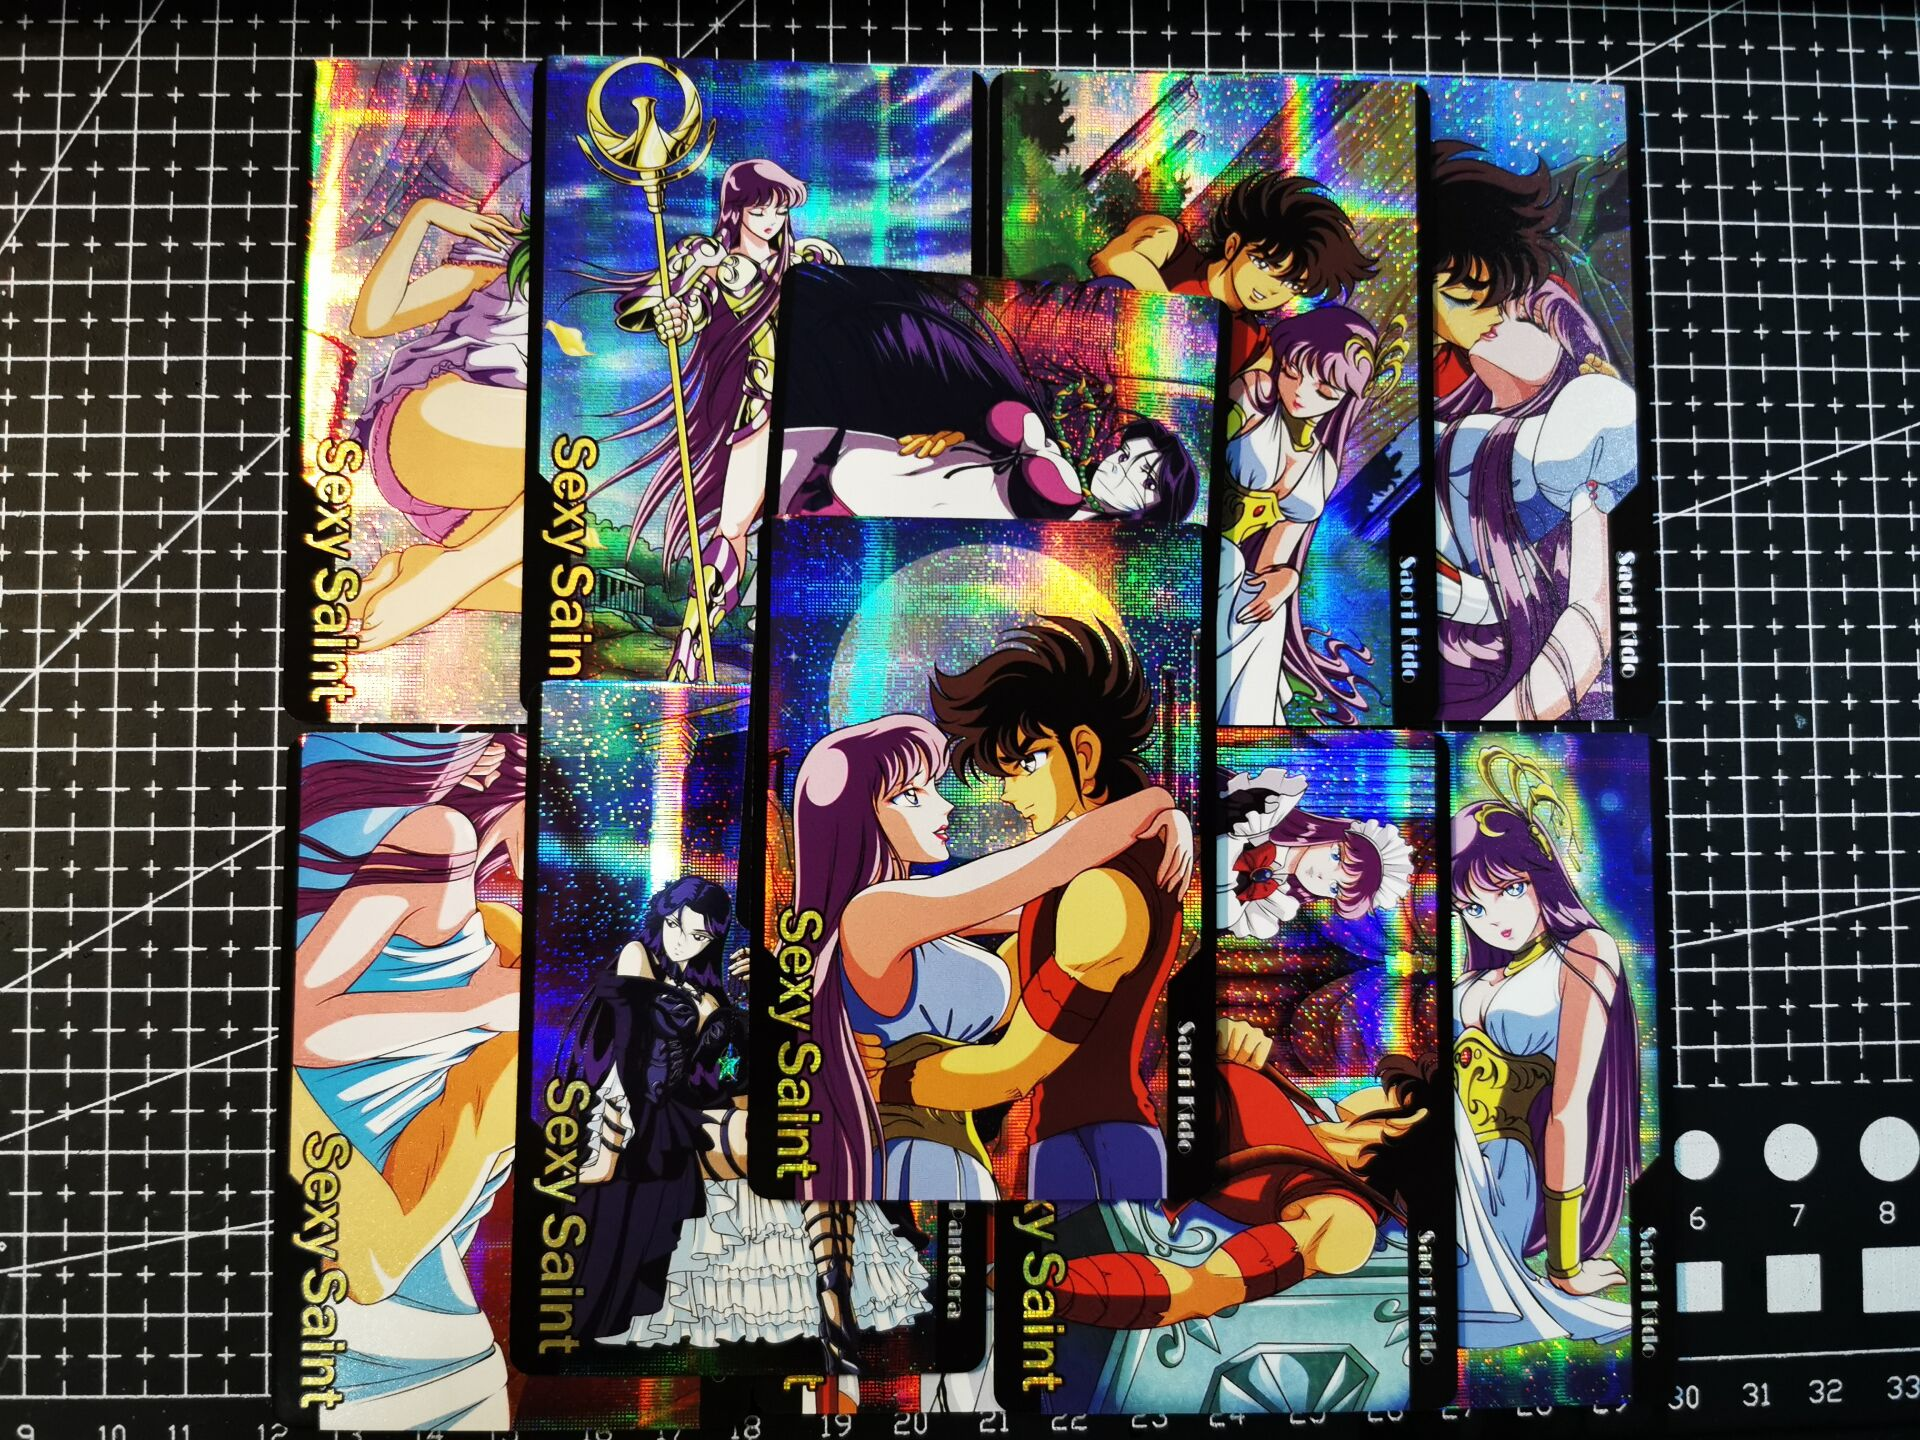 12pcs/set Saint Seiya Fun 2nd Toys Hobbies Hobby Collectibles Game Collection Anime Cards